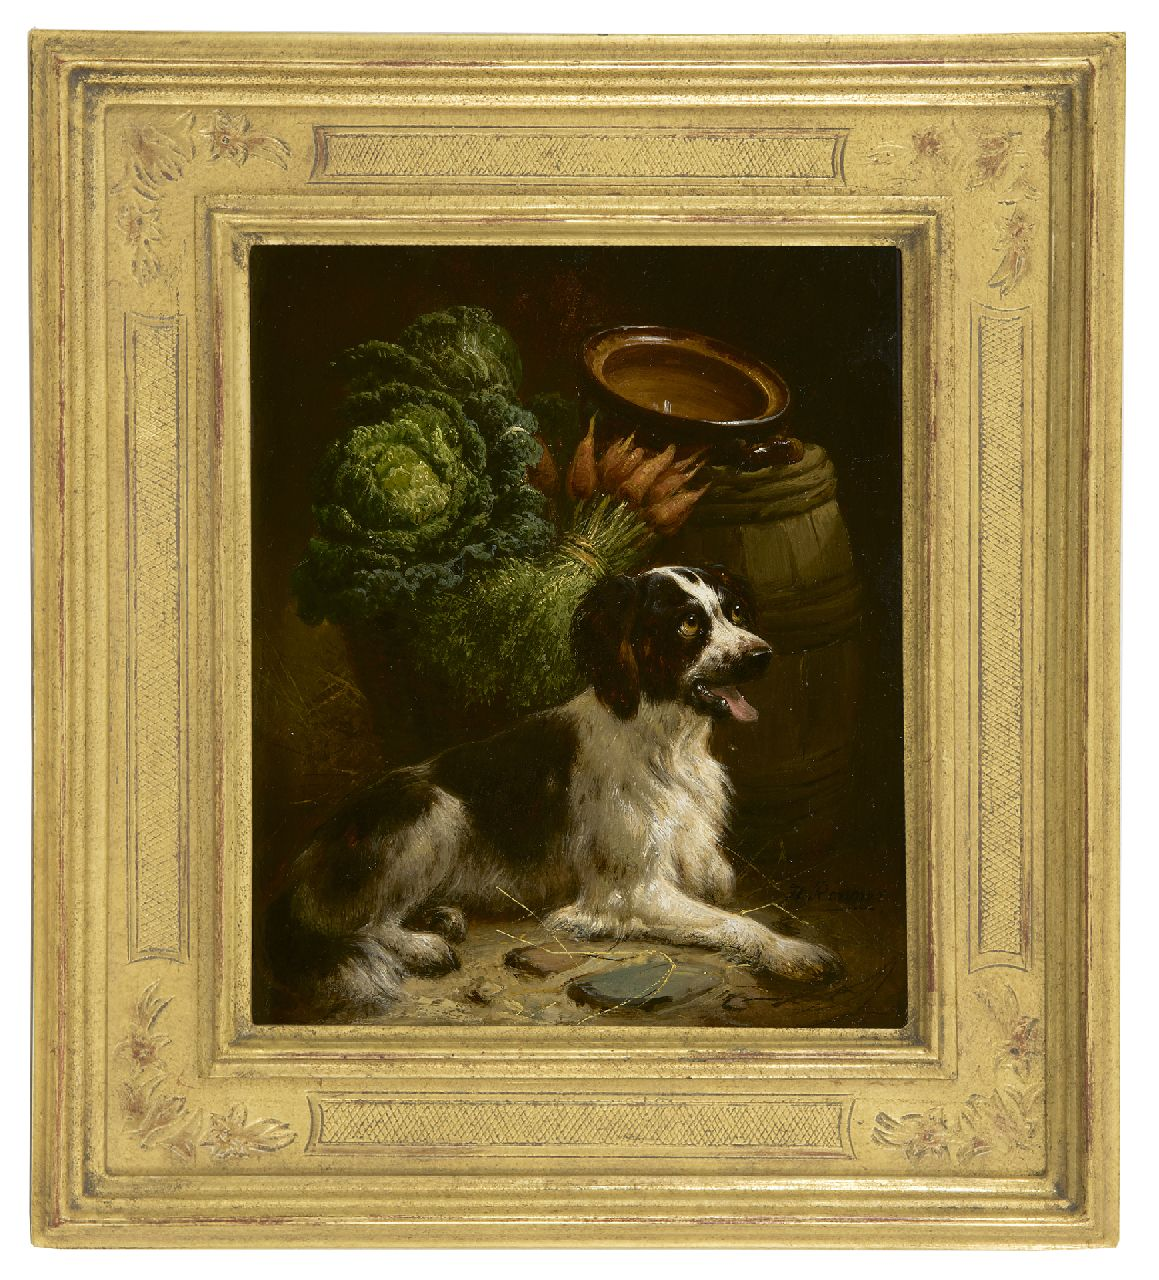 Ronner-Knip H.  | Henriette Ronner-Knip | Paintings offered for sale | A young setter, oil on panel 18.8 x 15.8 cm, signed l.r.